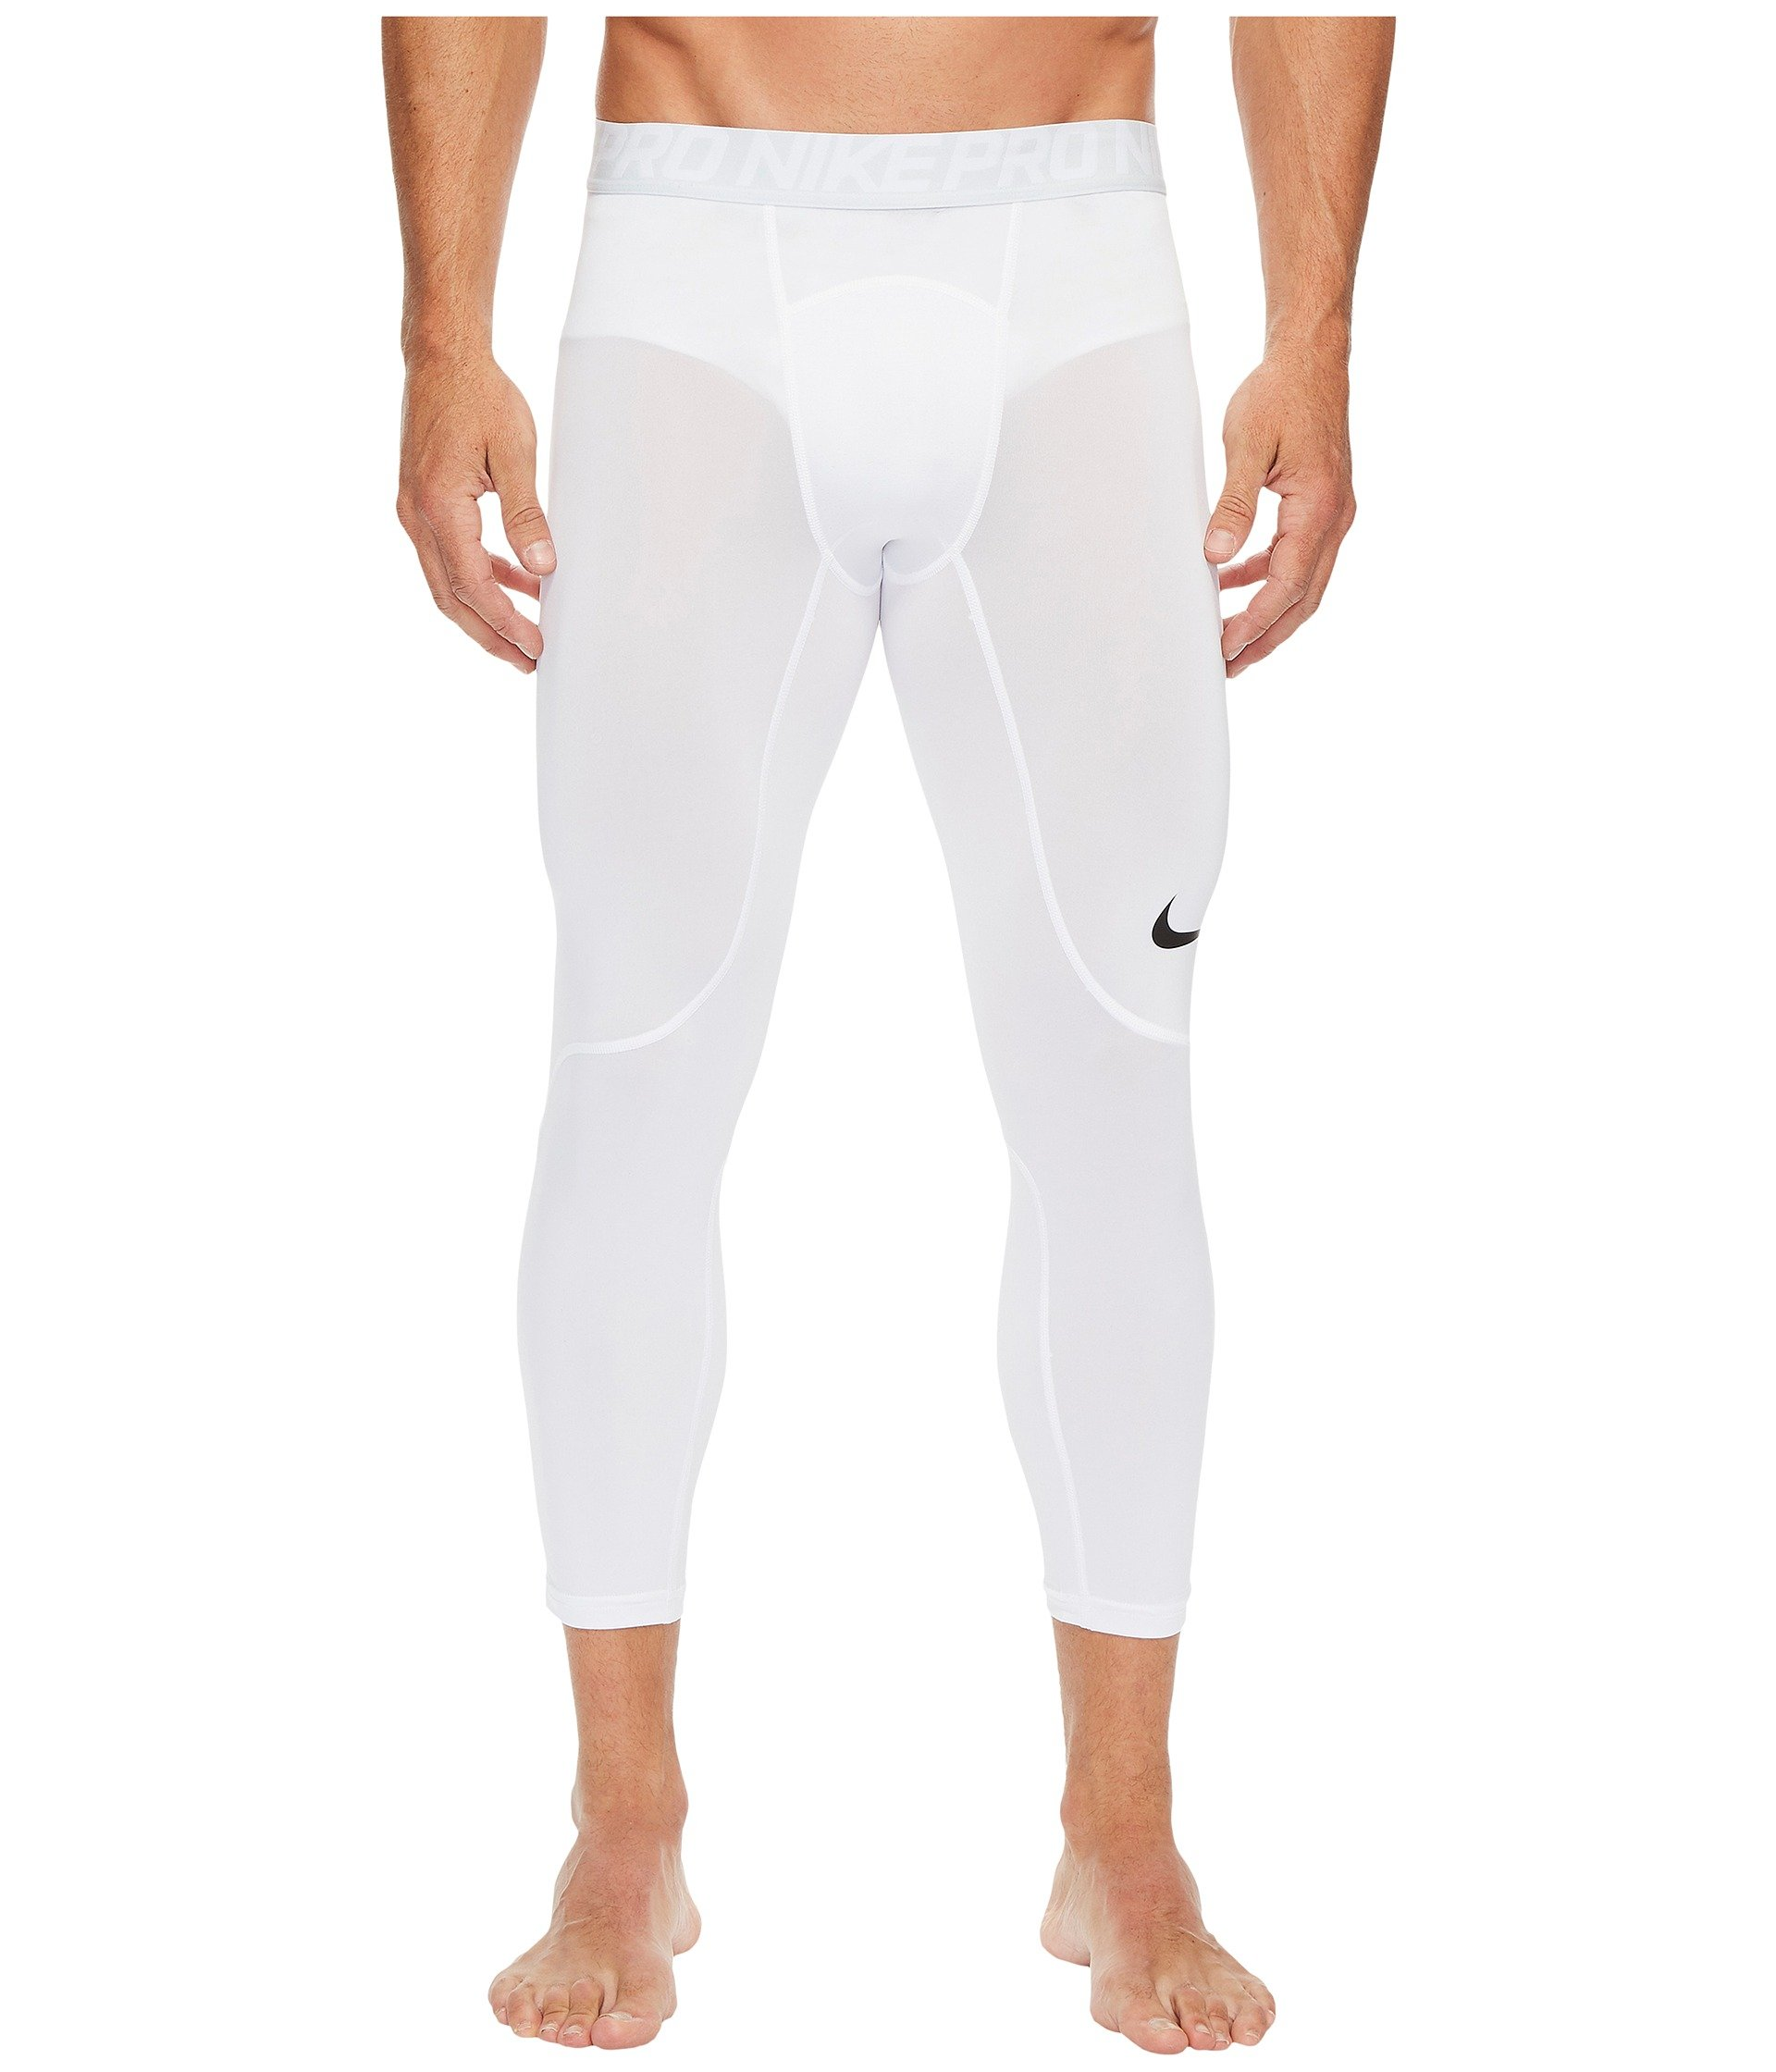 Nike Men's Pro Tights White/Pure Platinum/Black Size Small by Nike